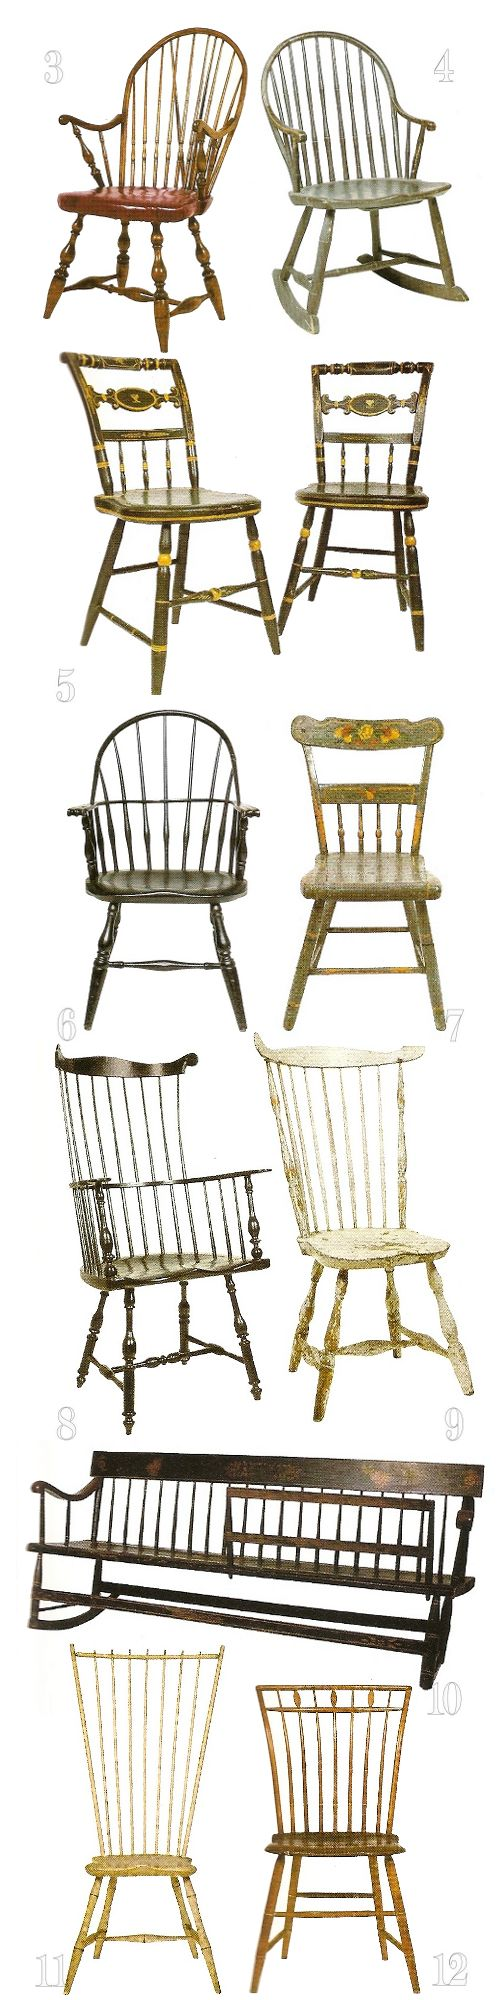 Antique chair styles identification - Windsor Chairs And Bench Identification